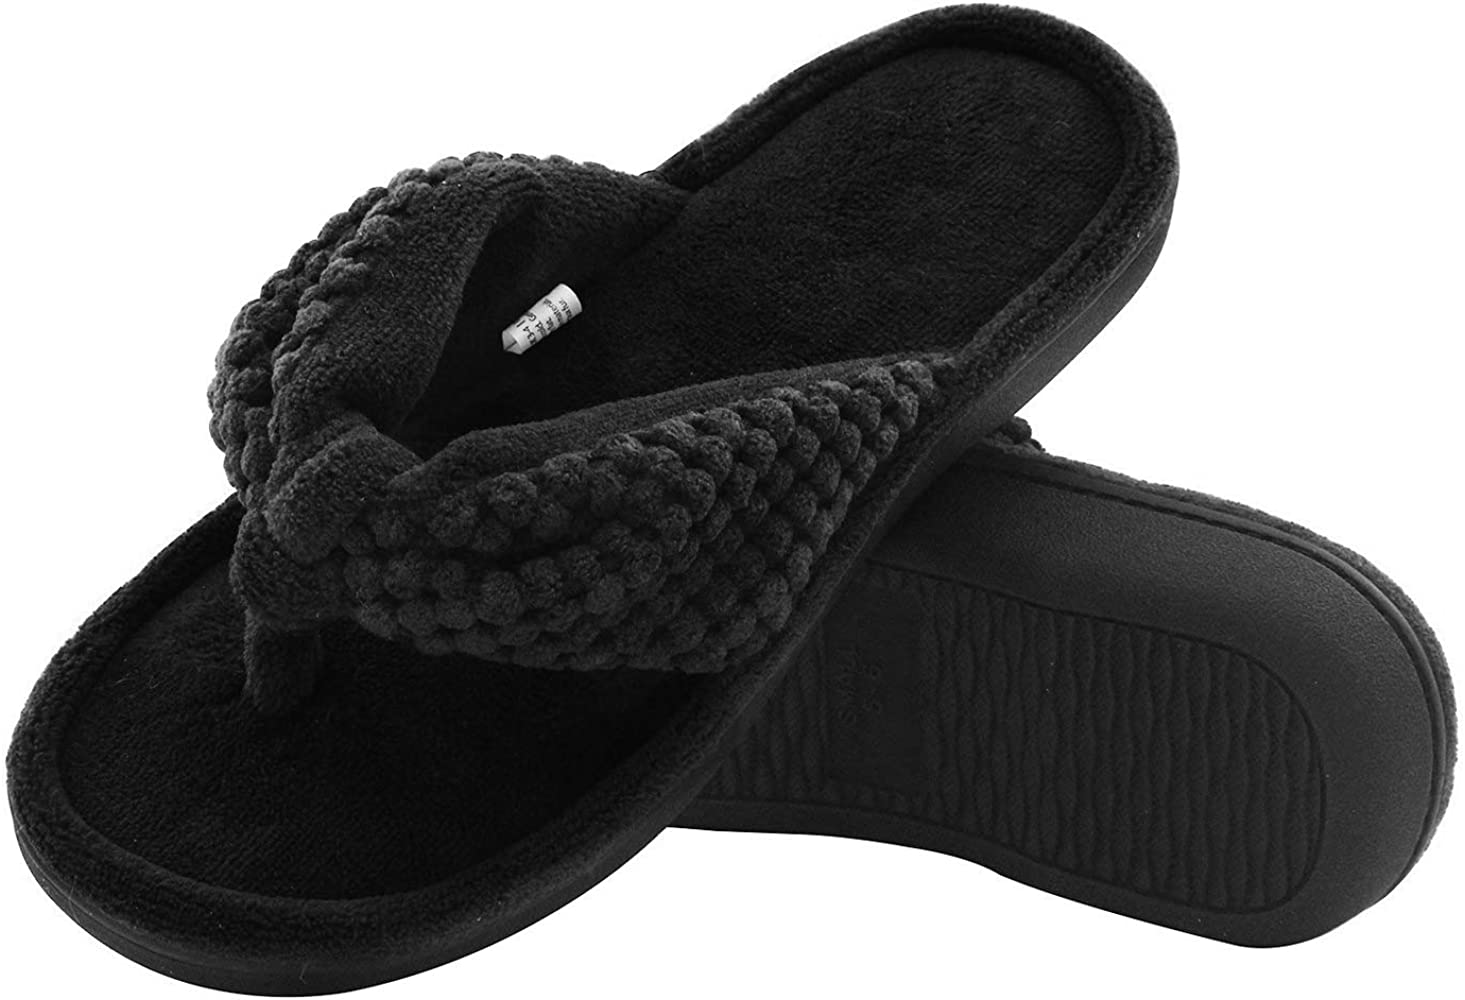 Memory Foam Flip Flop Slippers with